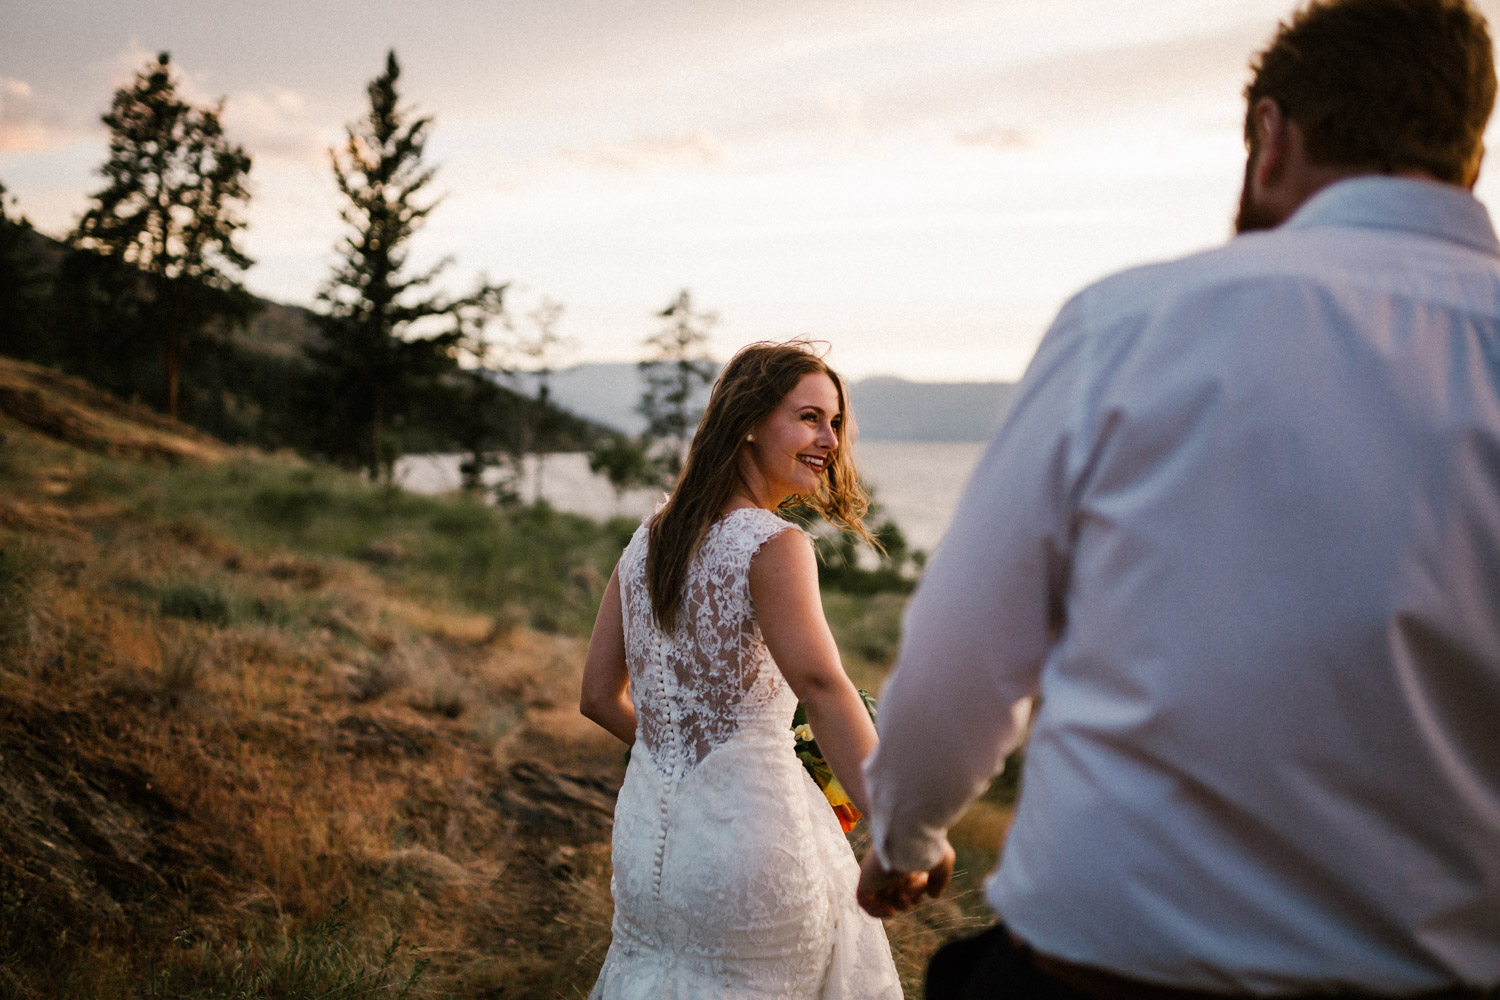 Kelowna Spring Elopement at Bertram Creek Park